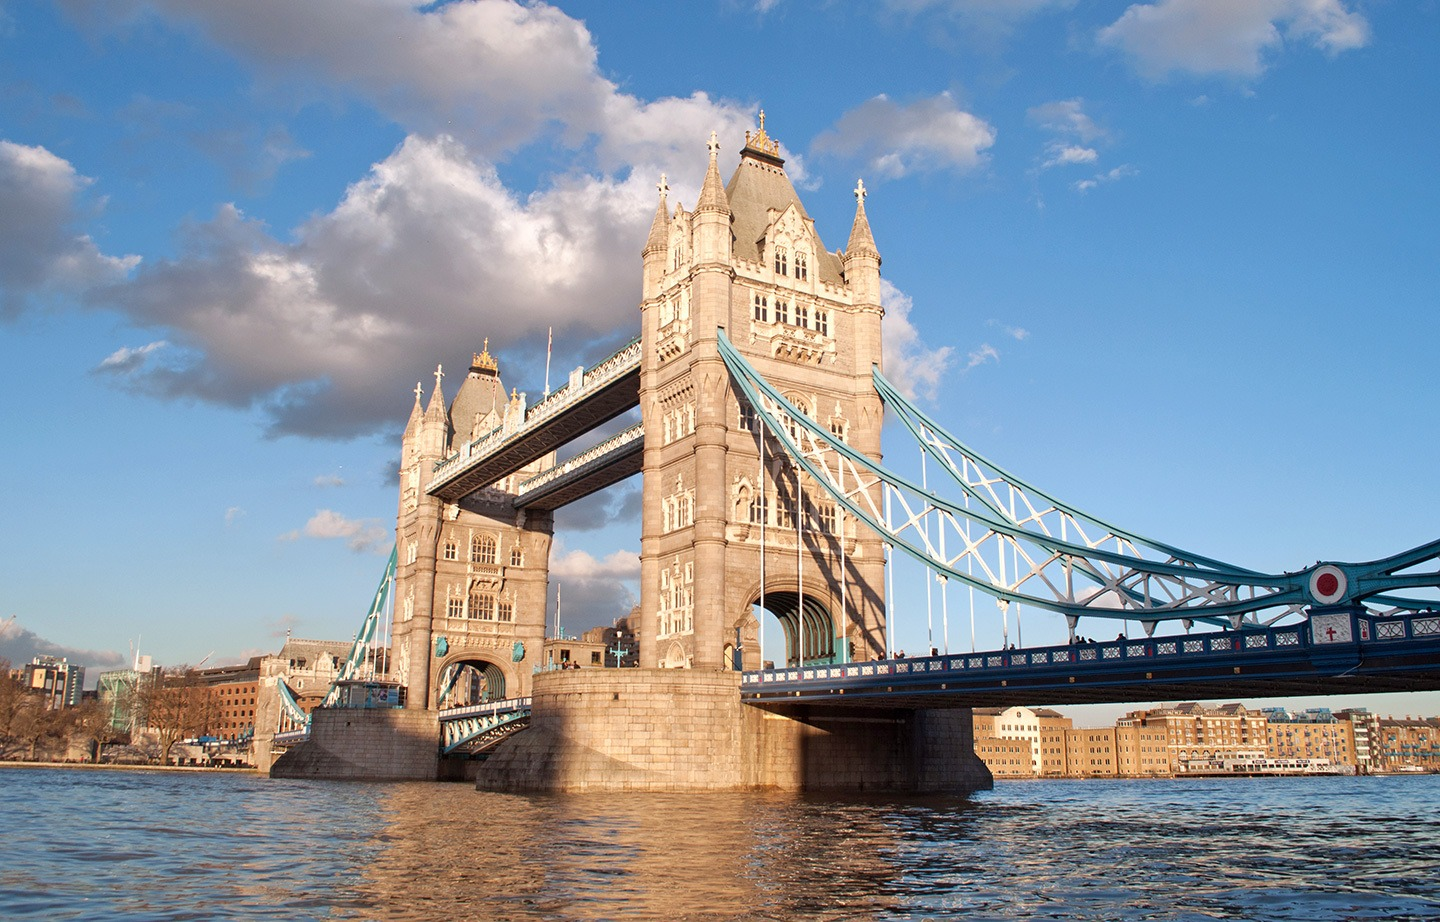 Tower Bridge in London on a sunny day